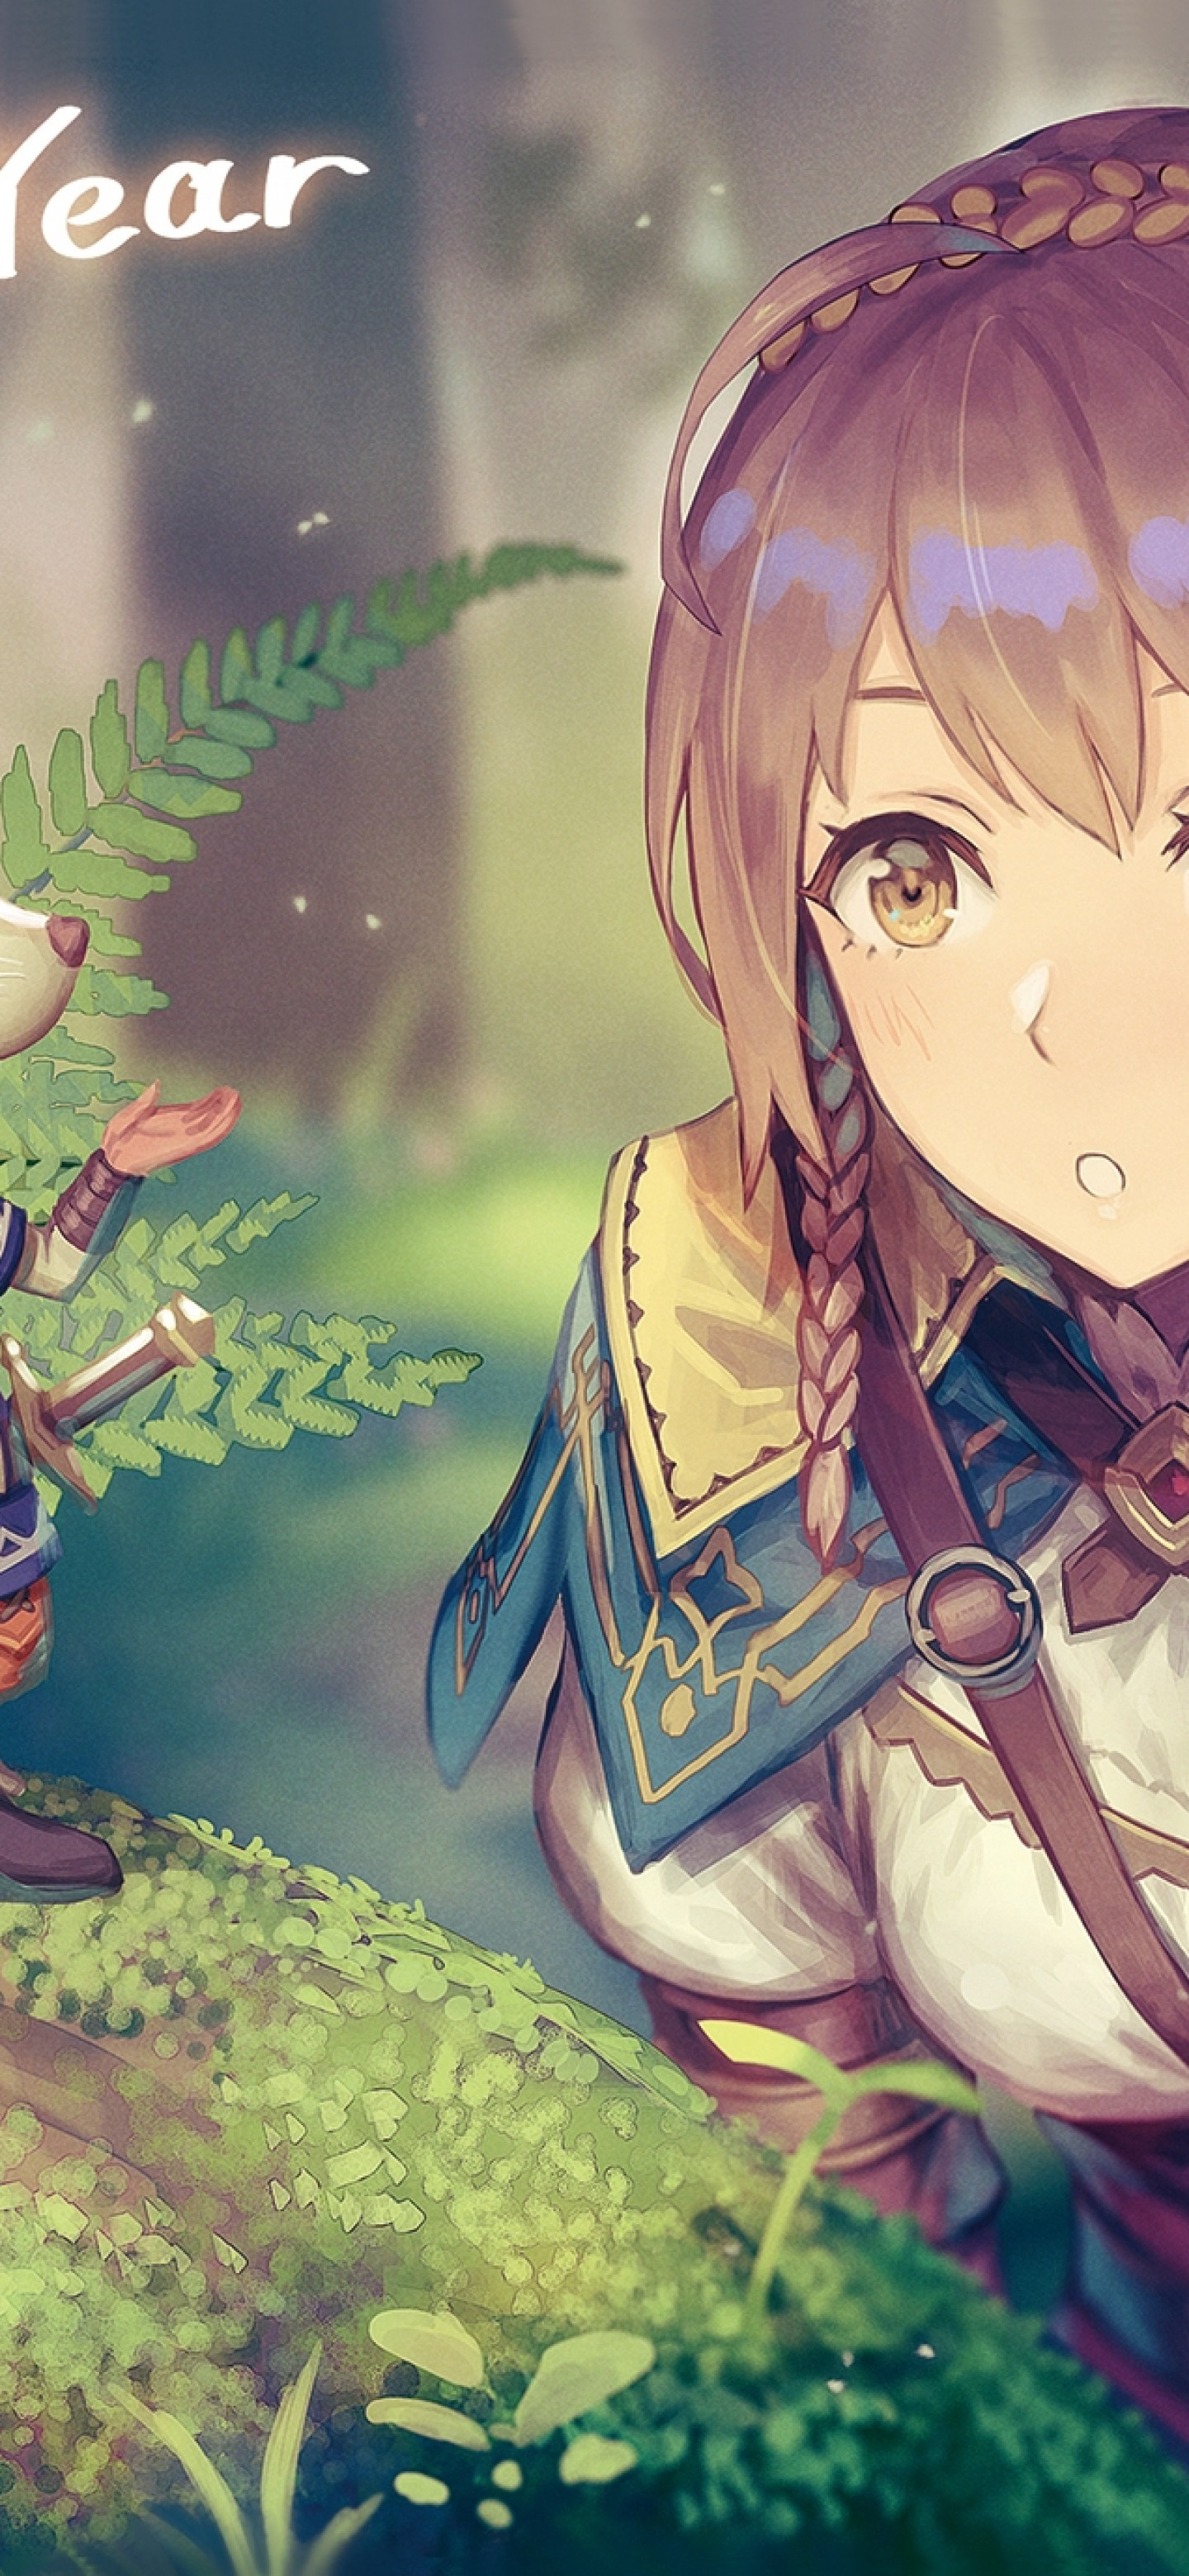 Download 1440x3120 Anime Girl Adventurer Forest Light Armor 1440x3120